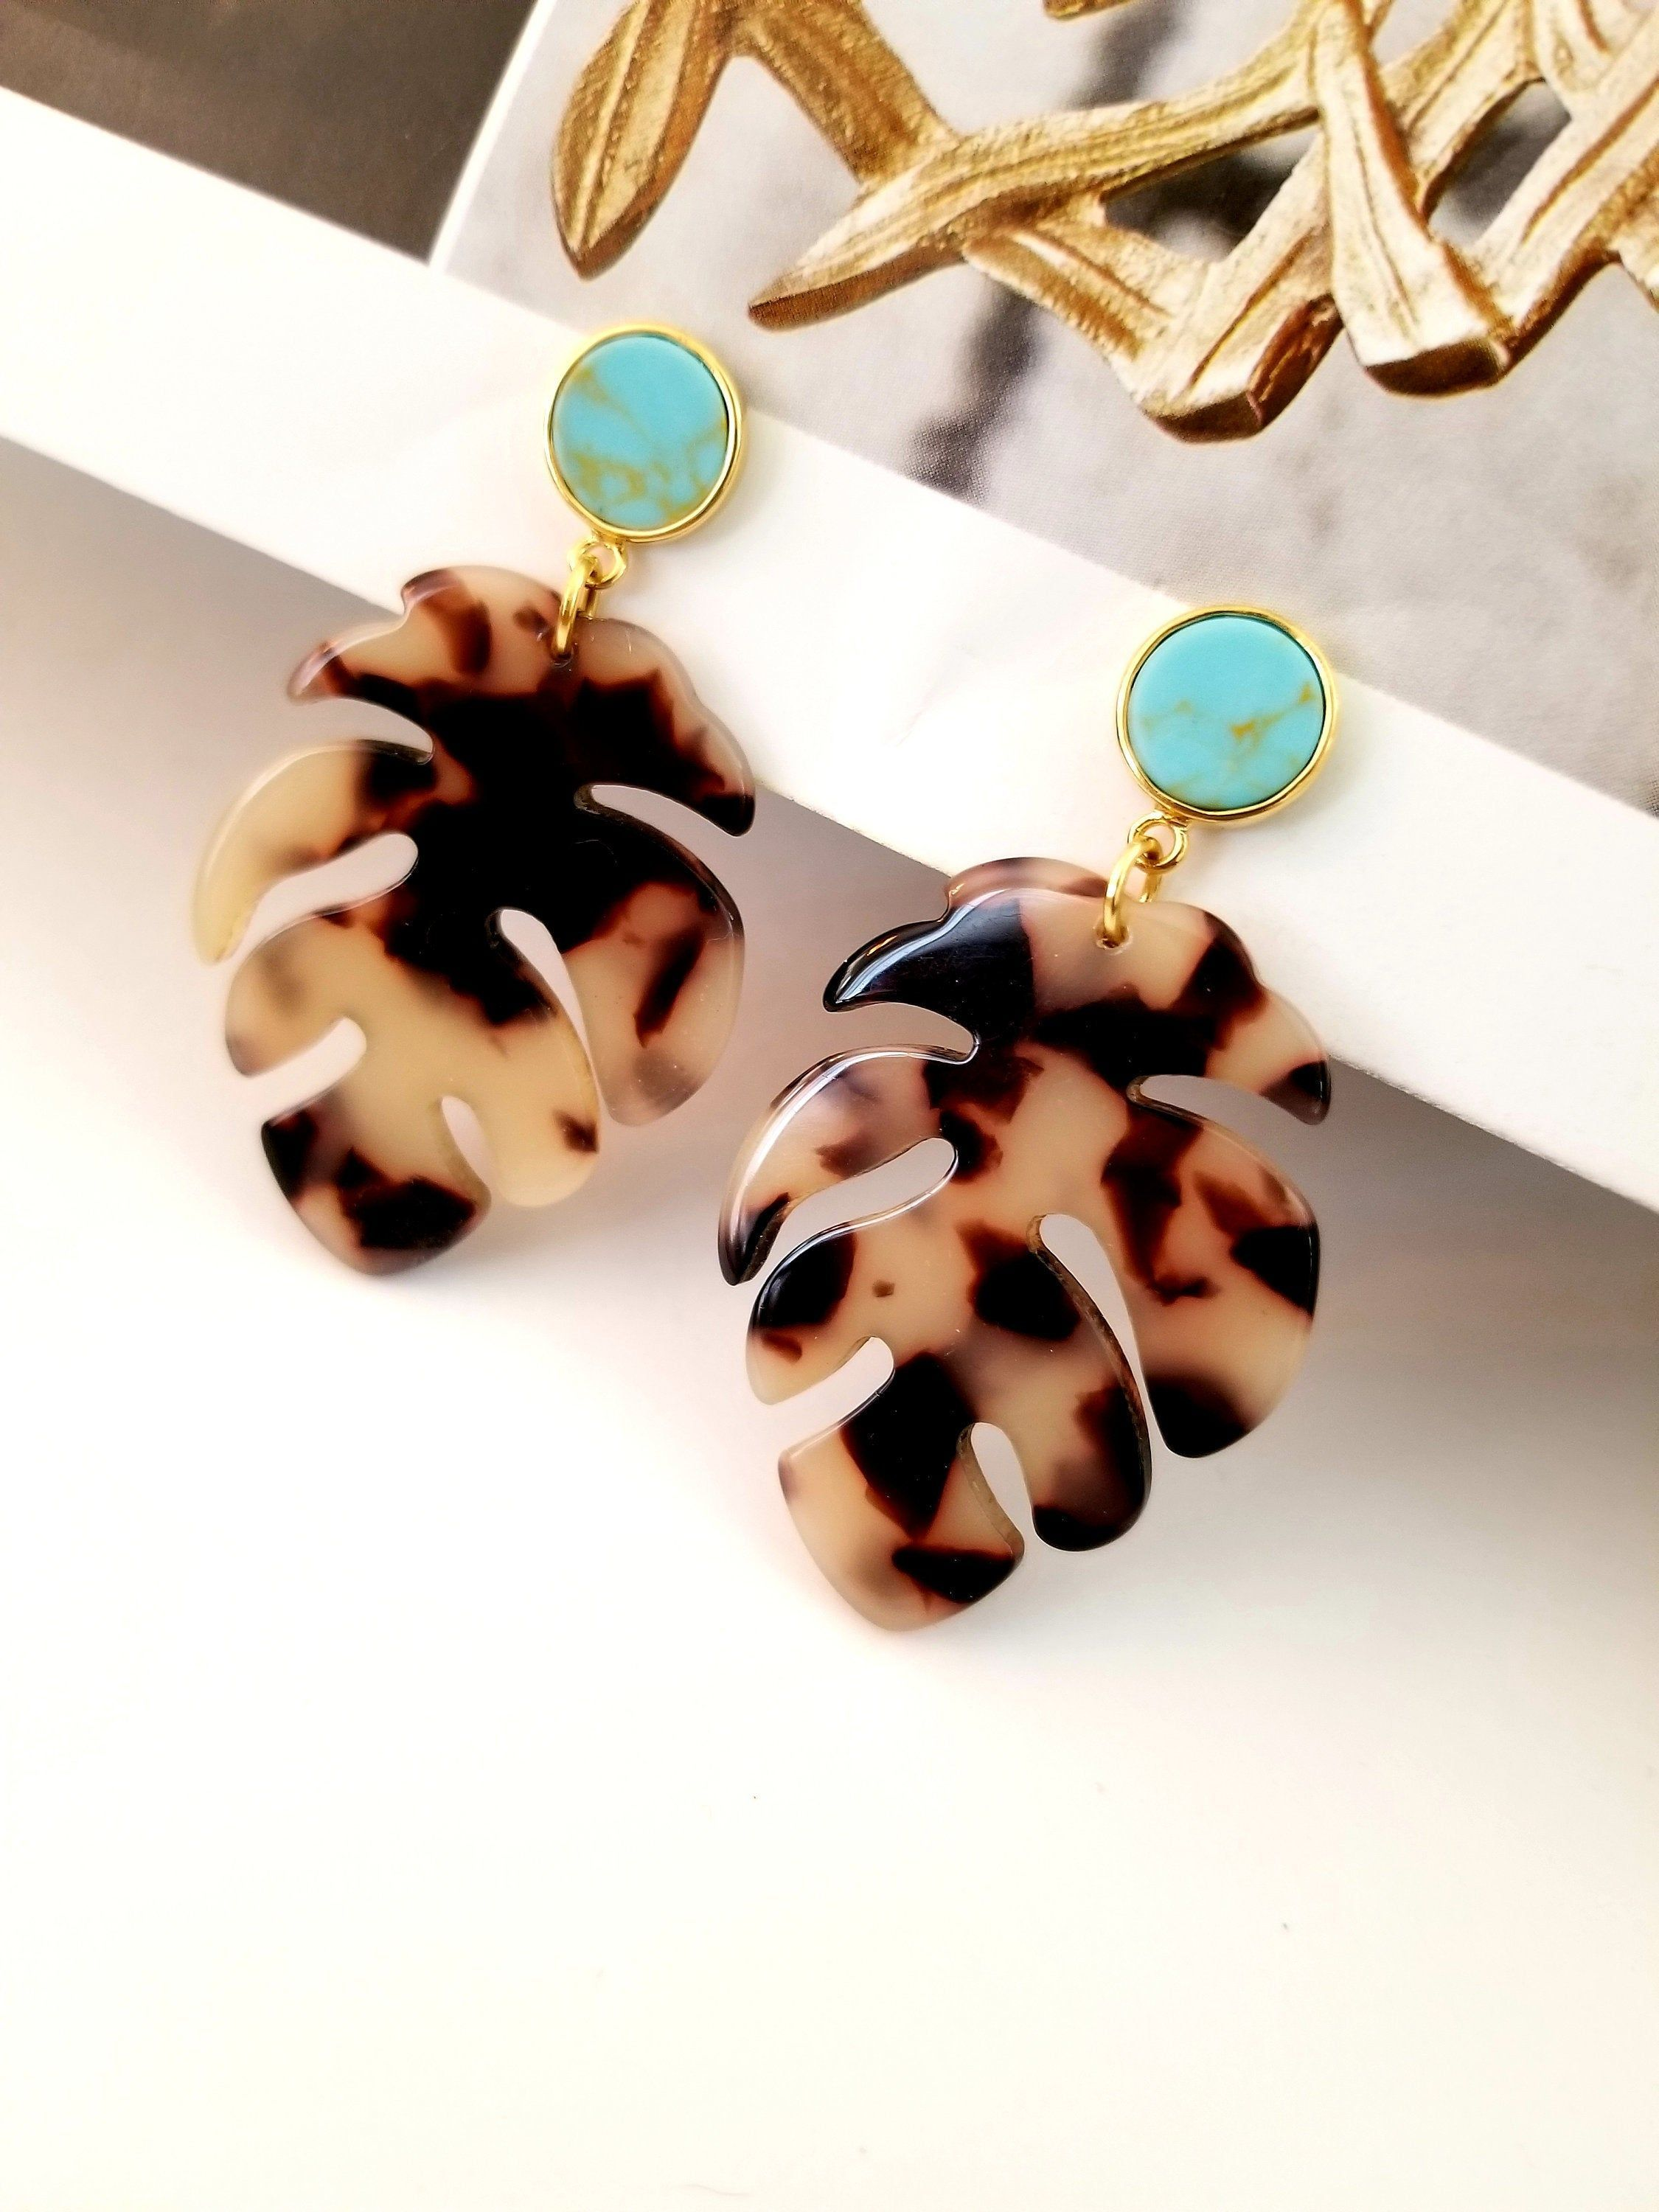 Autumn Leaf Statement Earrings / Turquoise Earrings /Tropical Jewelry / unique gift for Friends /Tortoise earrings Mothers Day Gift Ideas,  #Autumn #day #Earrings #Friends #Gift #Ideas #Jewelry #Leaf #Mothers #Statement #tortoise #tortoiseearringschristmasgifts #Tropical #Turquoise #Unique